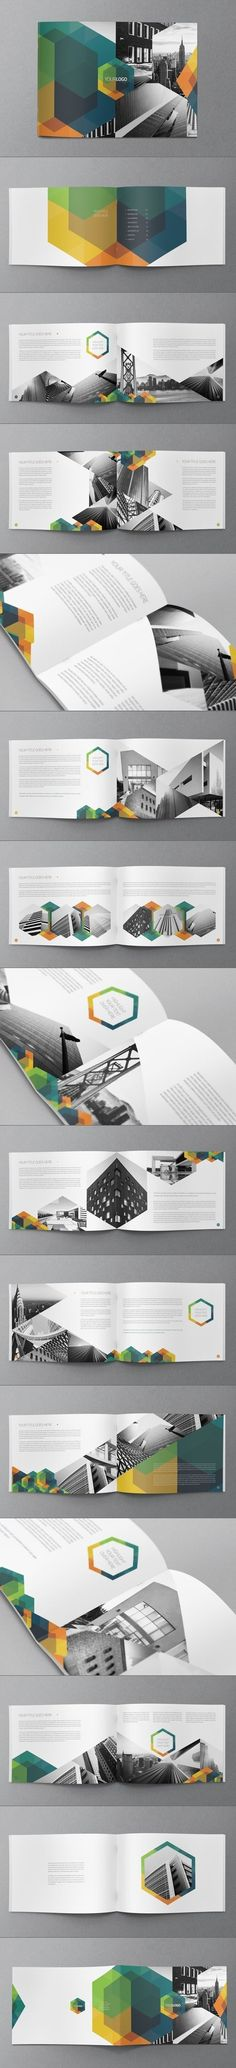 Hexo Brochure Design by Abra Design | Graphic Design in Geometry